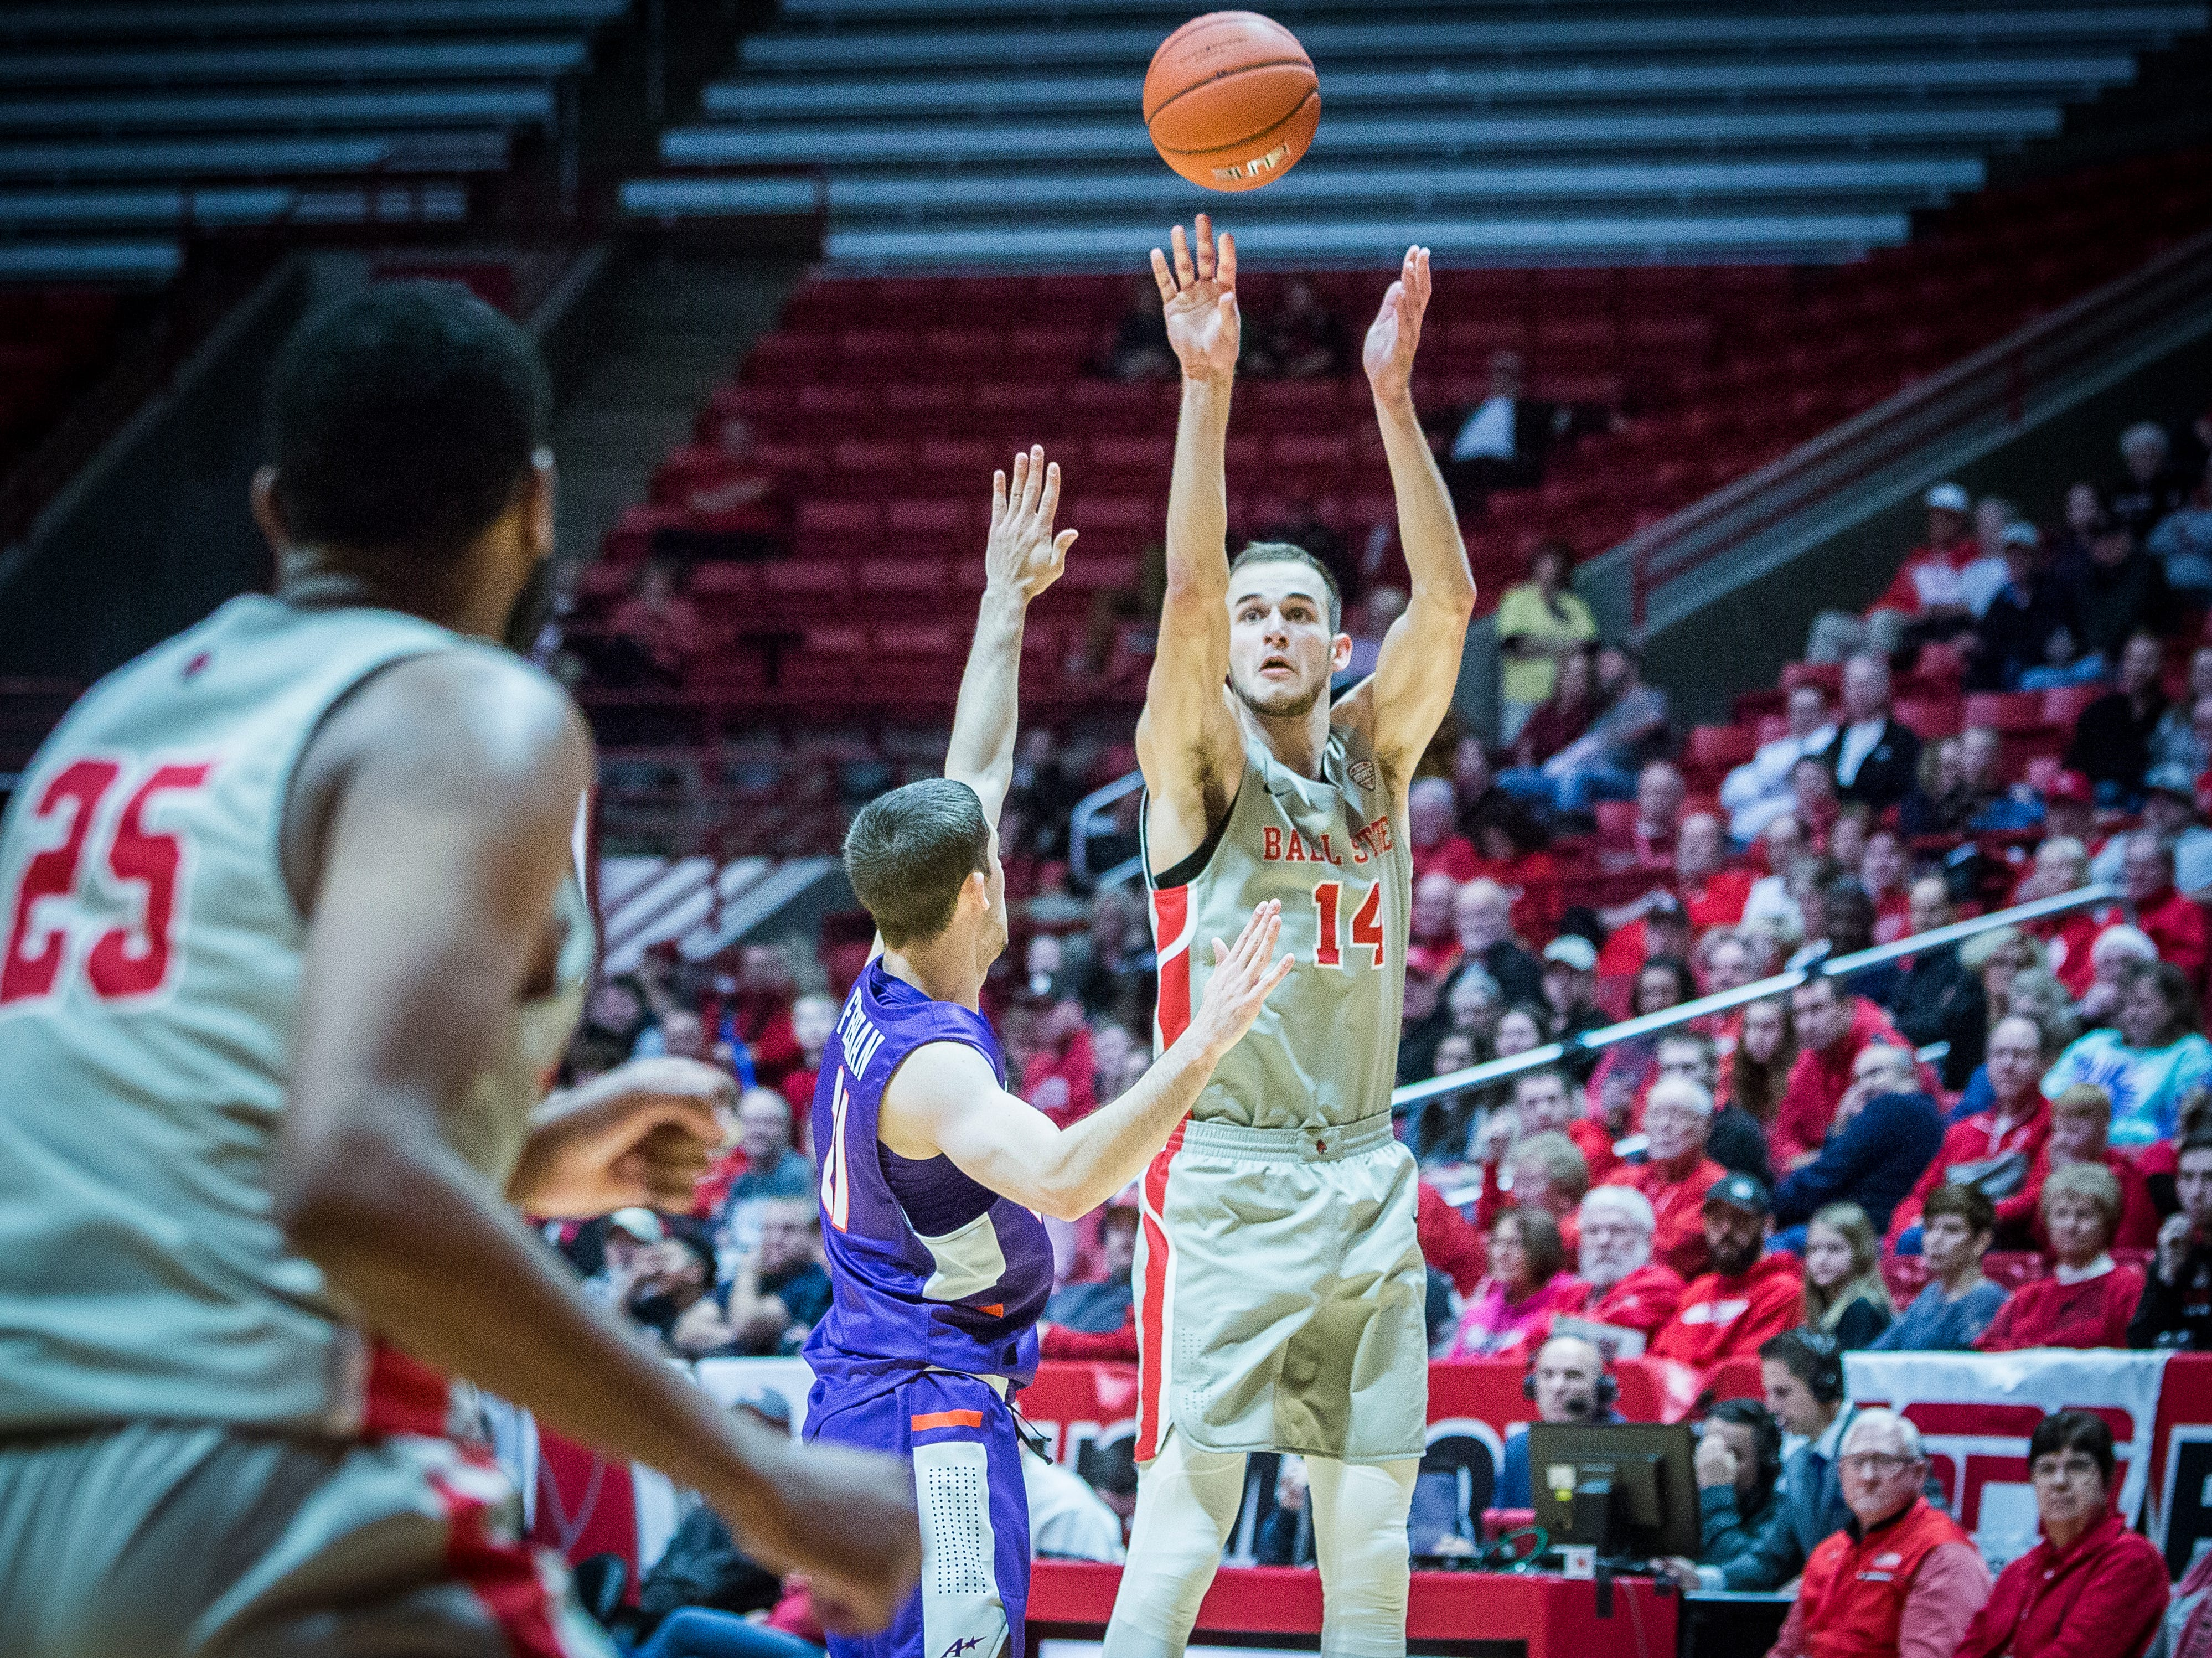 Ball State's Kyle Mallers shoots past Evansville's defense during their game at Worthen Arena Saturday, Nov. 24, 2018.